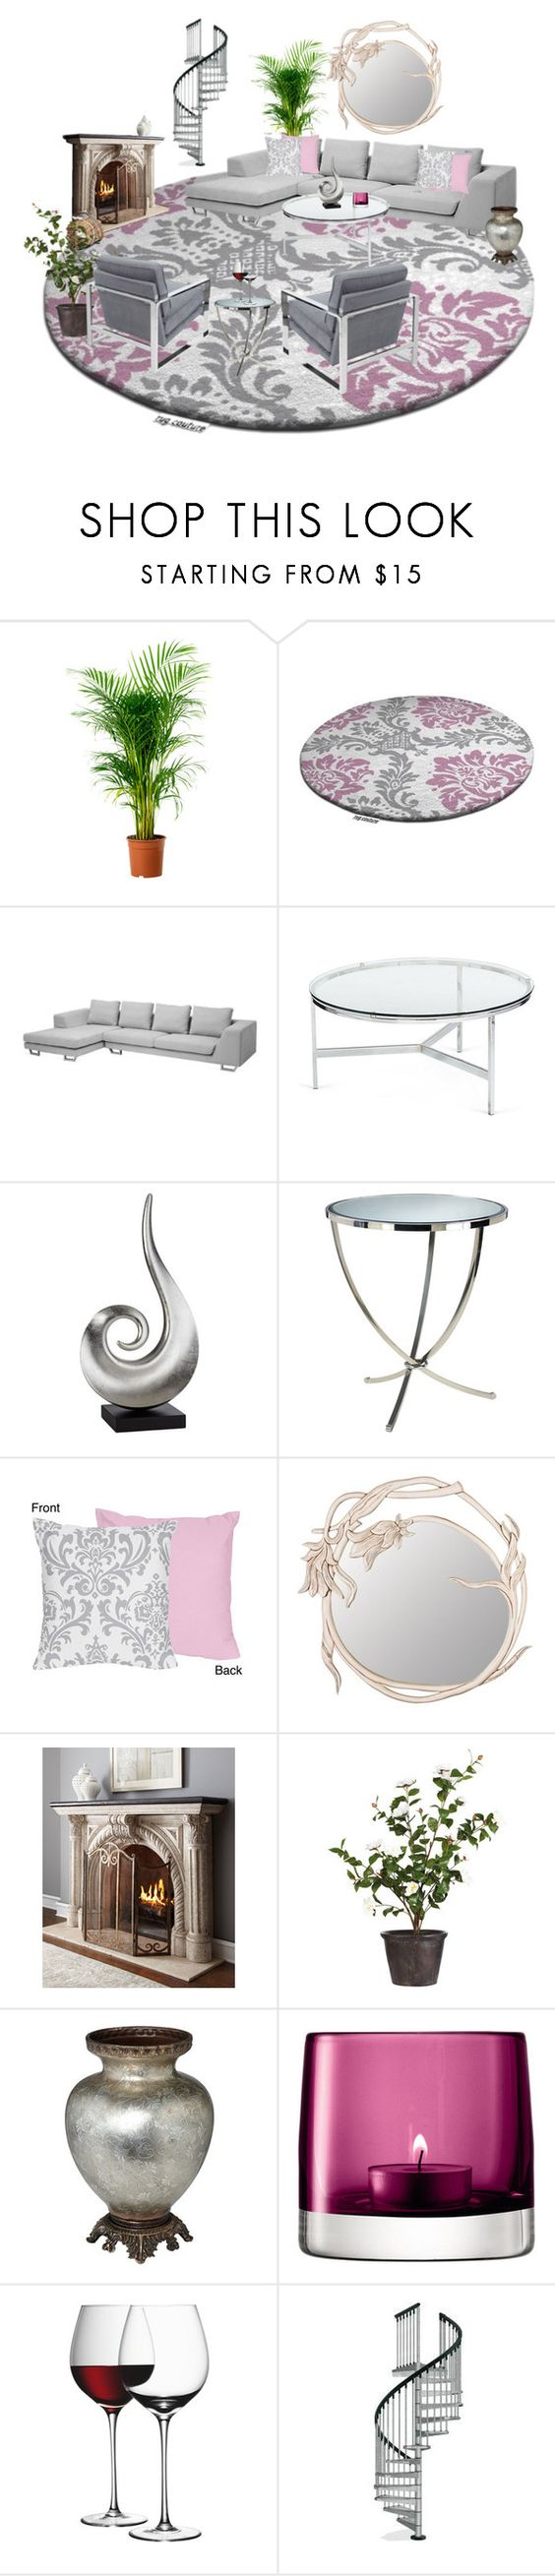 Cozy Living By Oregonelegance Liked On Polyvore Featuring Interior Interiors Interior Design Home Home Decor Int Design Cozy Living Sweet Jojo Designs